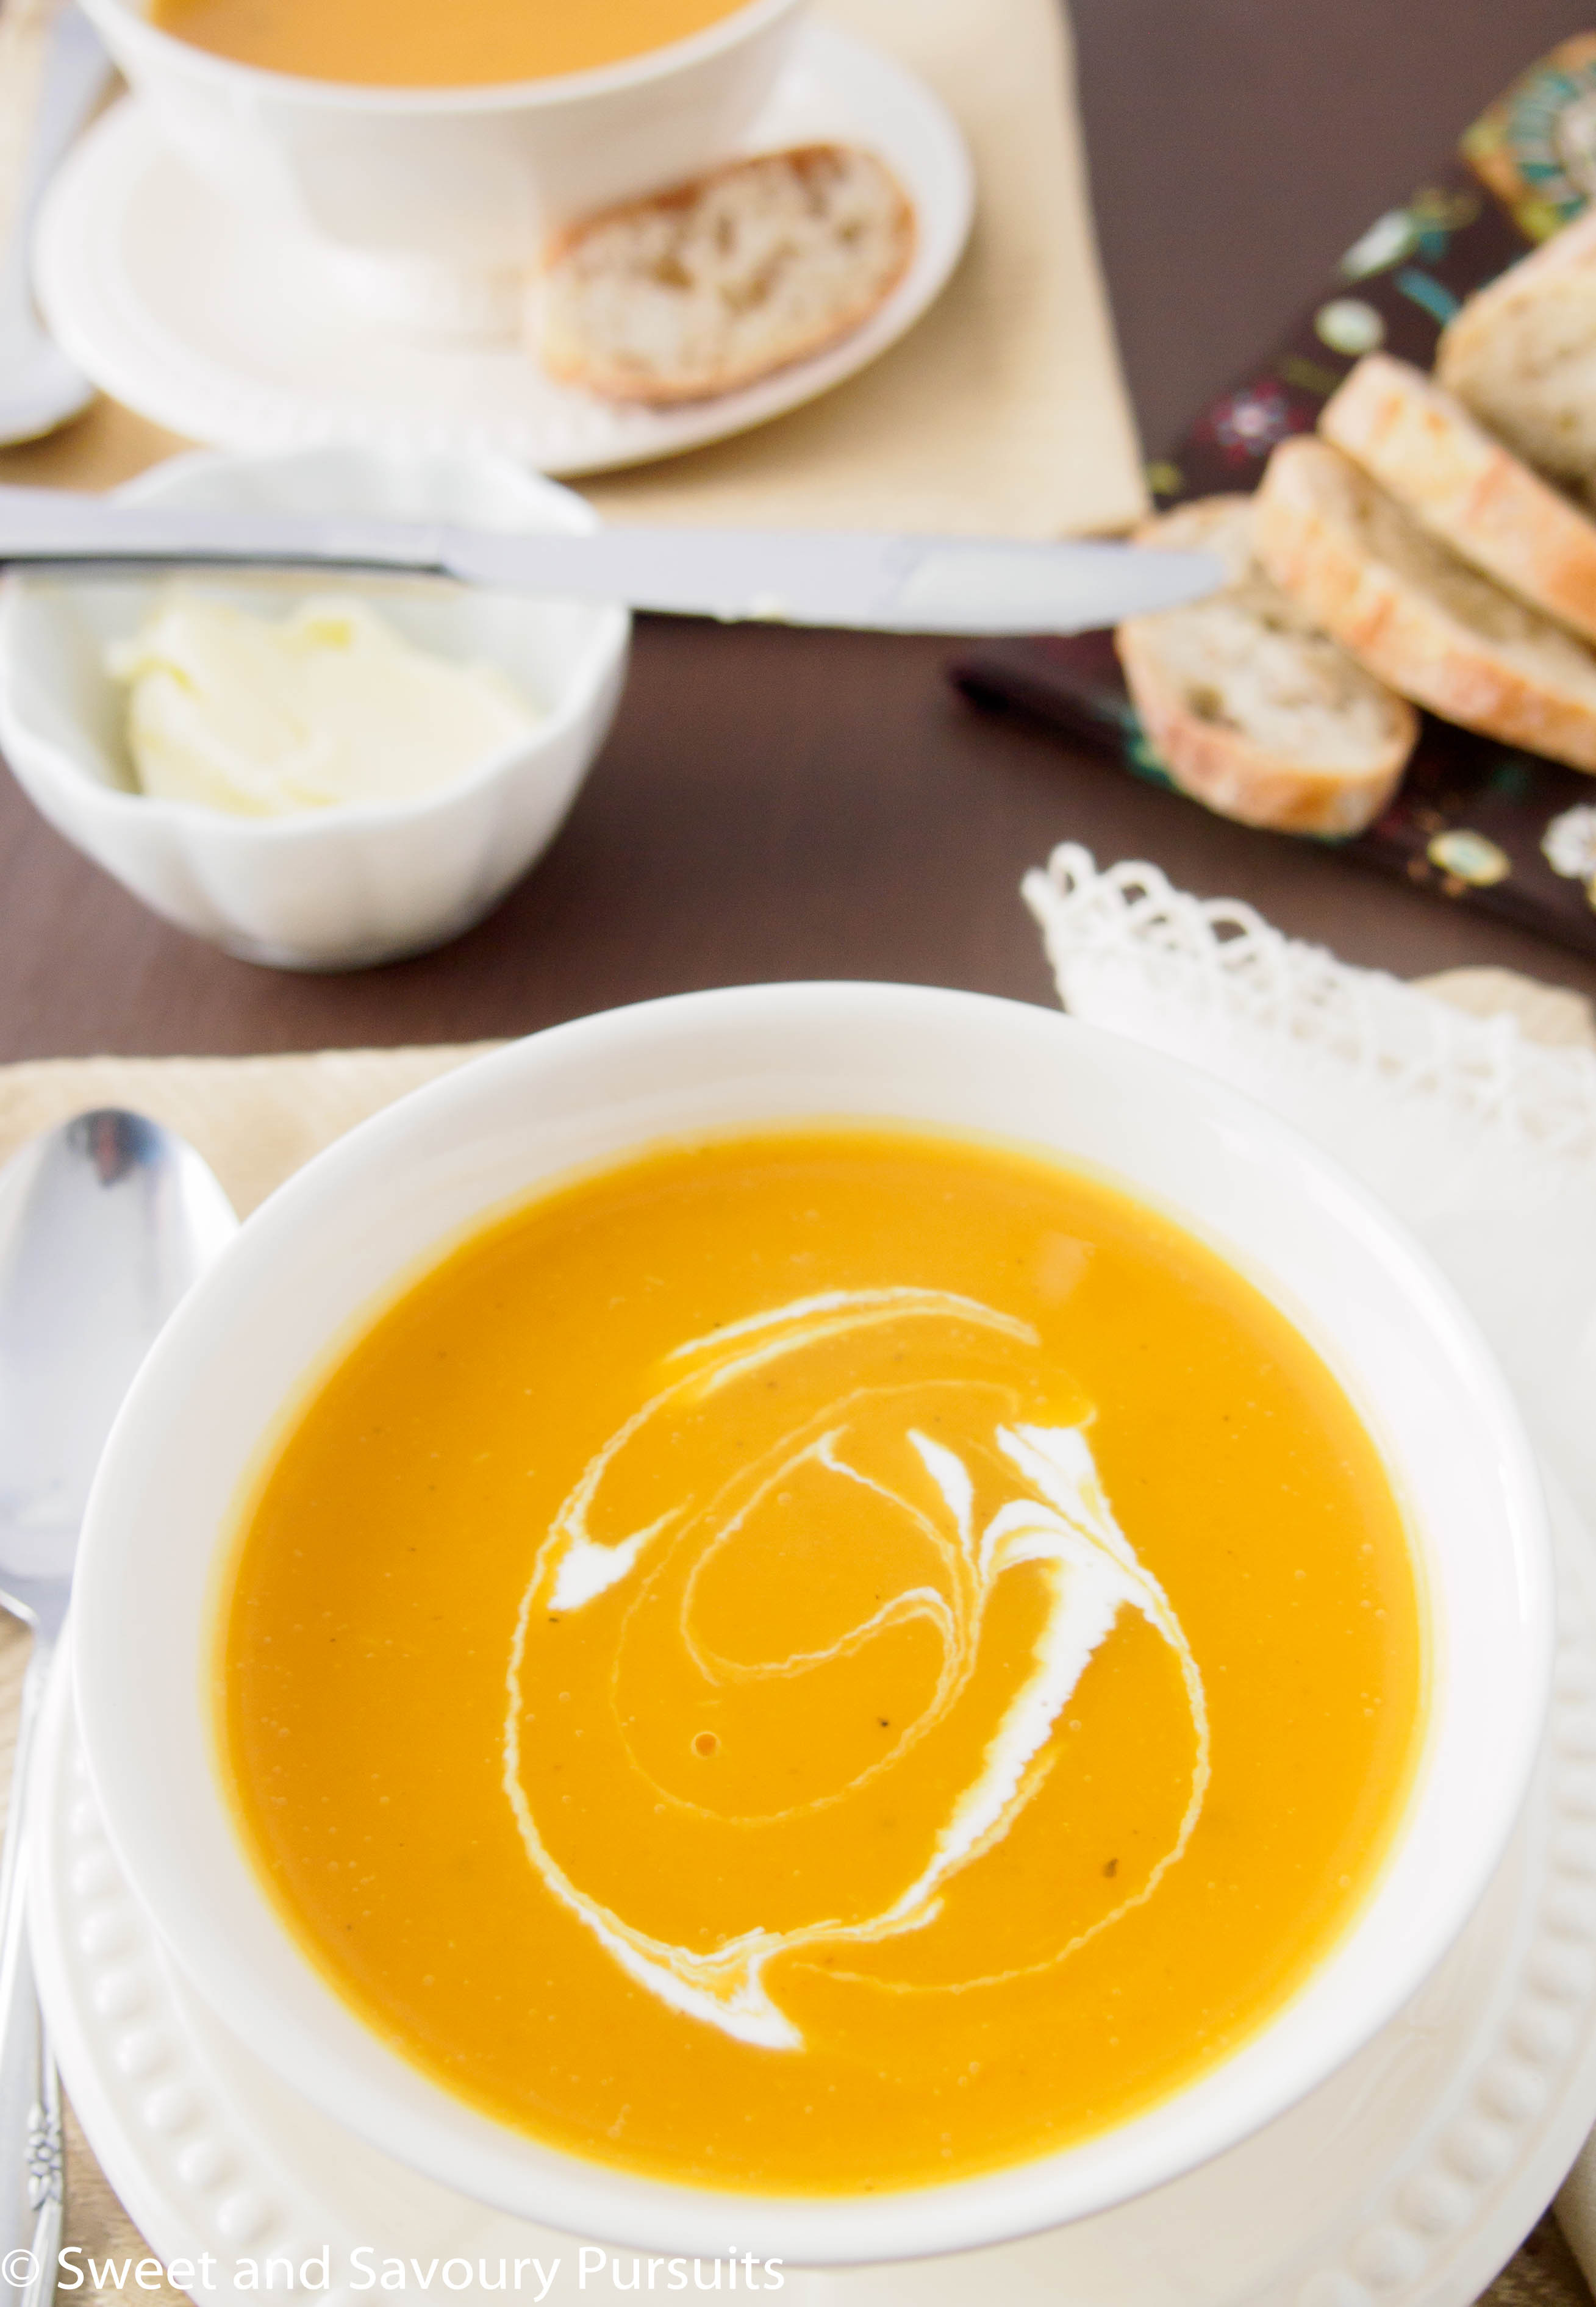 Roasted Butternut Squash and Pear Soup - Sweet and Savoury Pursuits